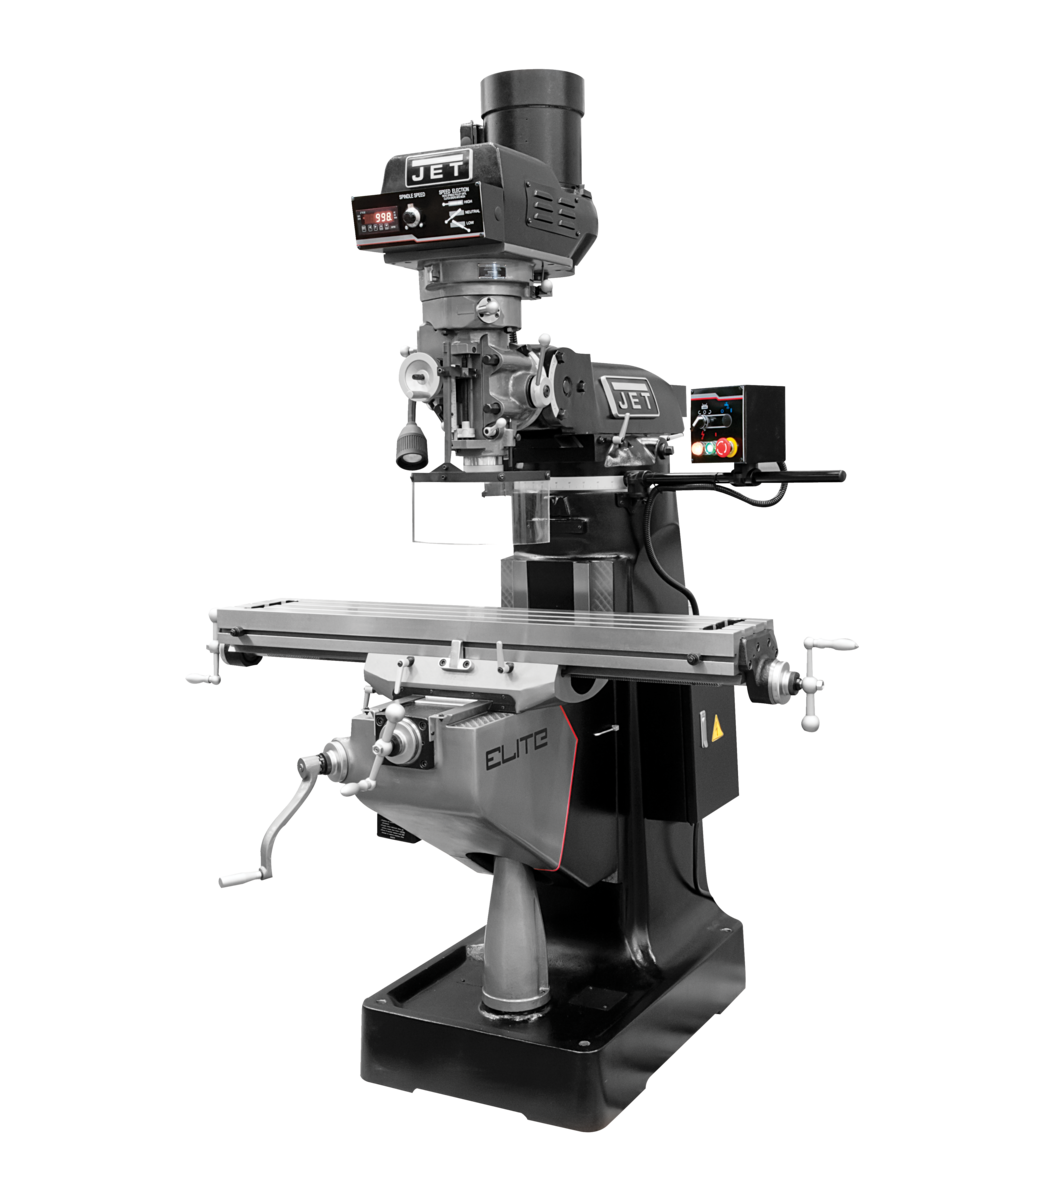 EVS-949 Mill with 3-Axis ACU-RITE 303 (Knee) DRO and Servo X, Y, Z-Axis Powerfeeds and USA Air Powered Draw Bar